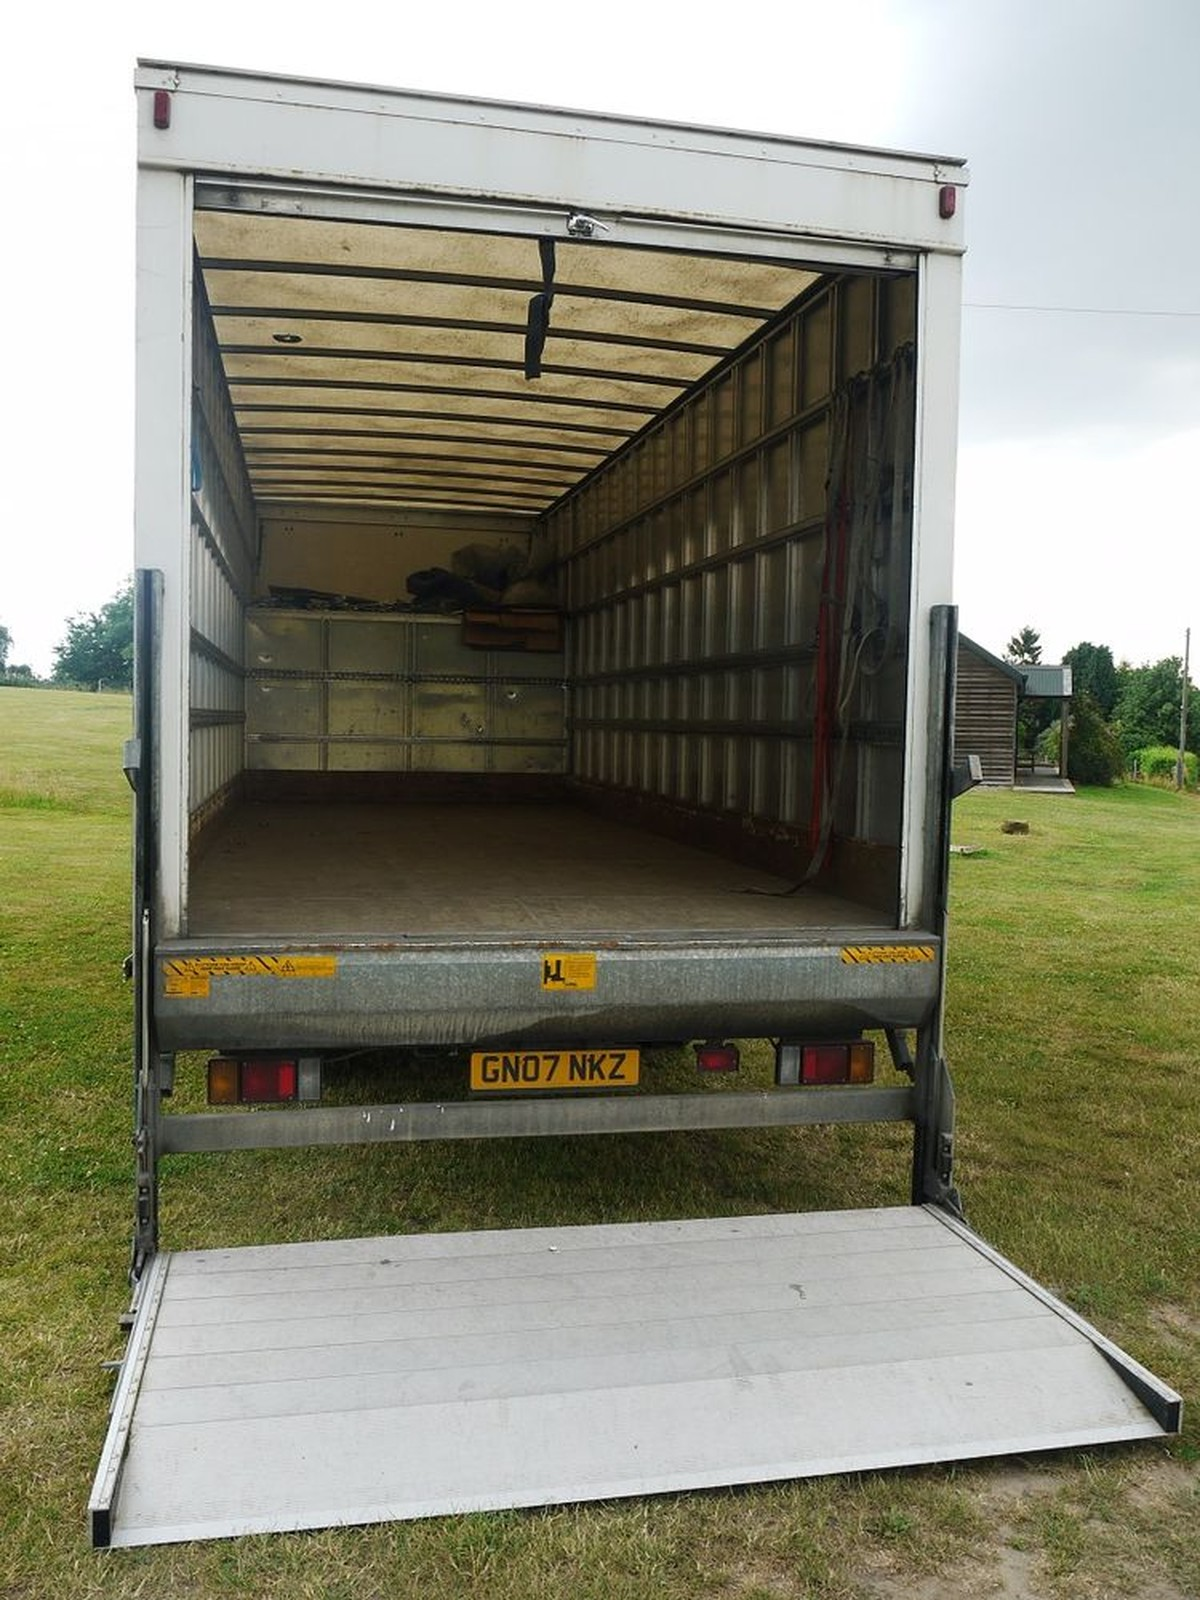 Used Trucks For Sale >> Secondhand Lorries and Vans   7500Kg and Under   Isuzu NQR-70 7.5Tonne Box Van with Tail-lift ...